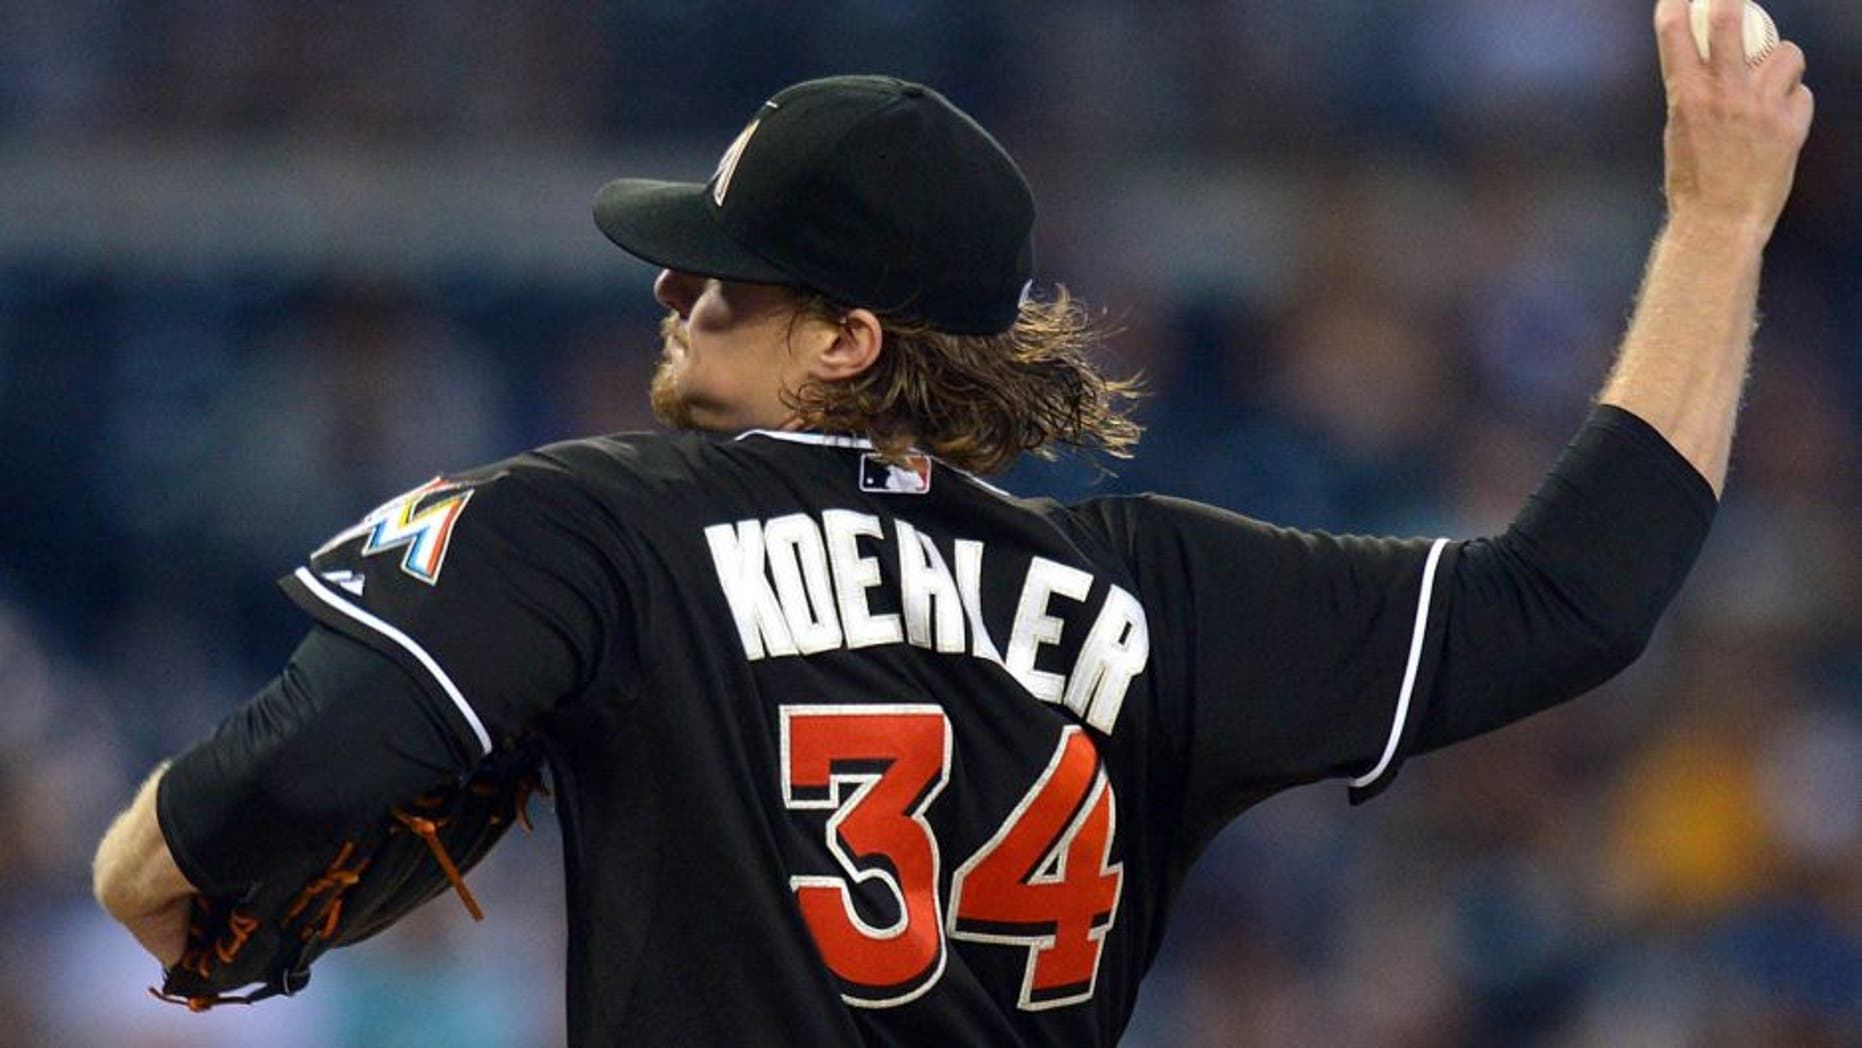 Jul 23, 2015; San Diego, CA, USA; Miami Marlins starting pitcher Tom Koehler (34) pitches against the San Diego Padres during the third inning at Petco Park. Mandatory Credit: Jake Roth-USA TODAY Sports